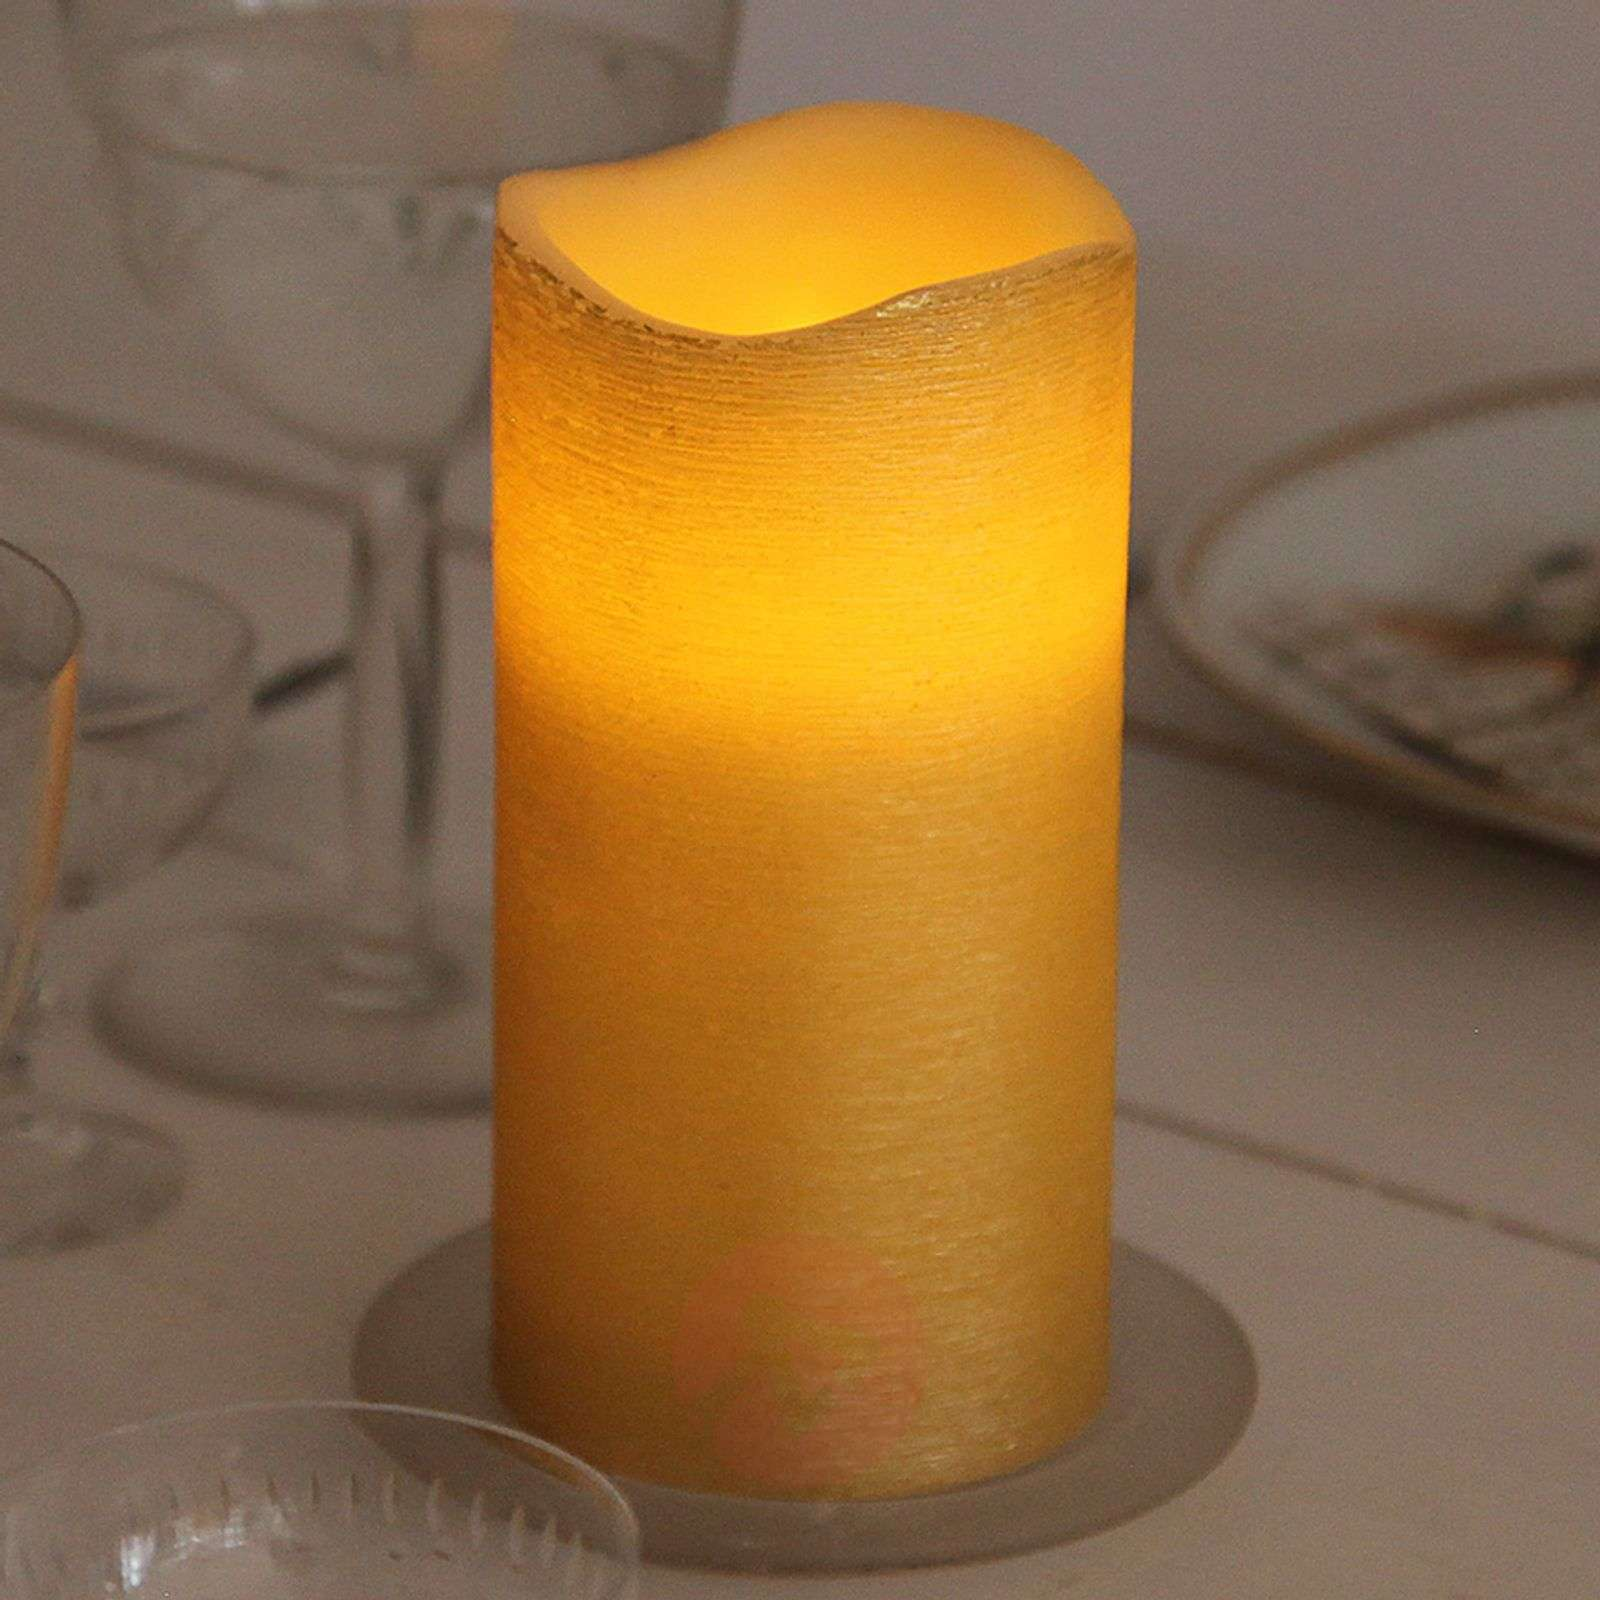 Structured real wax LED candle Linda 15 cm-1522541-01